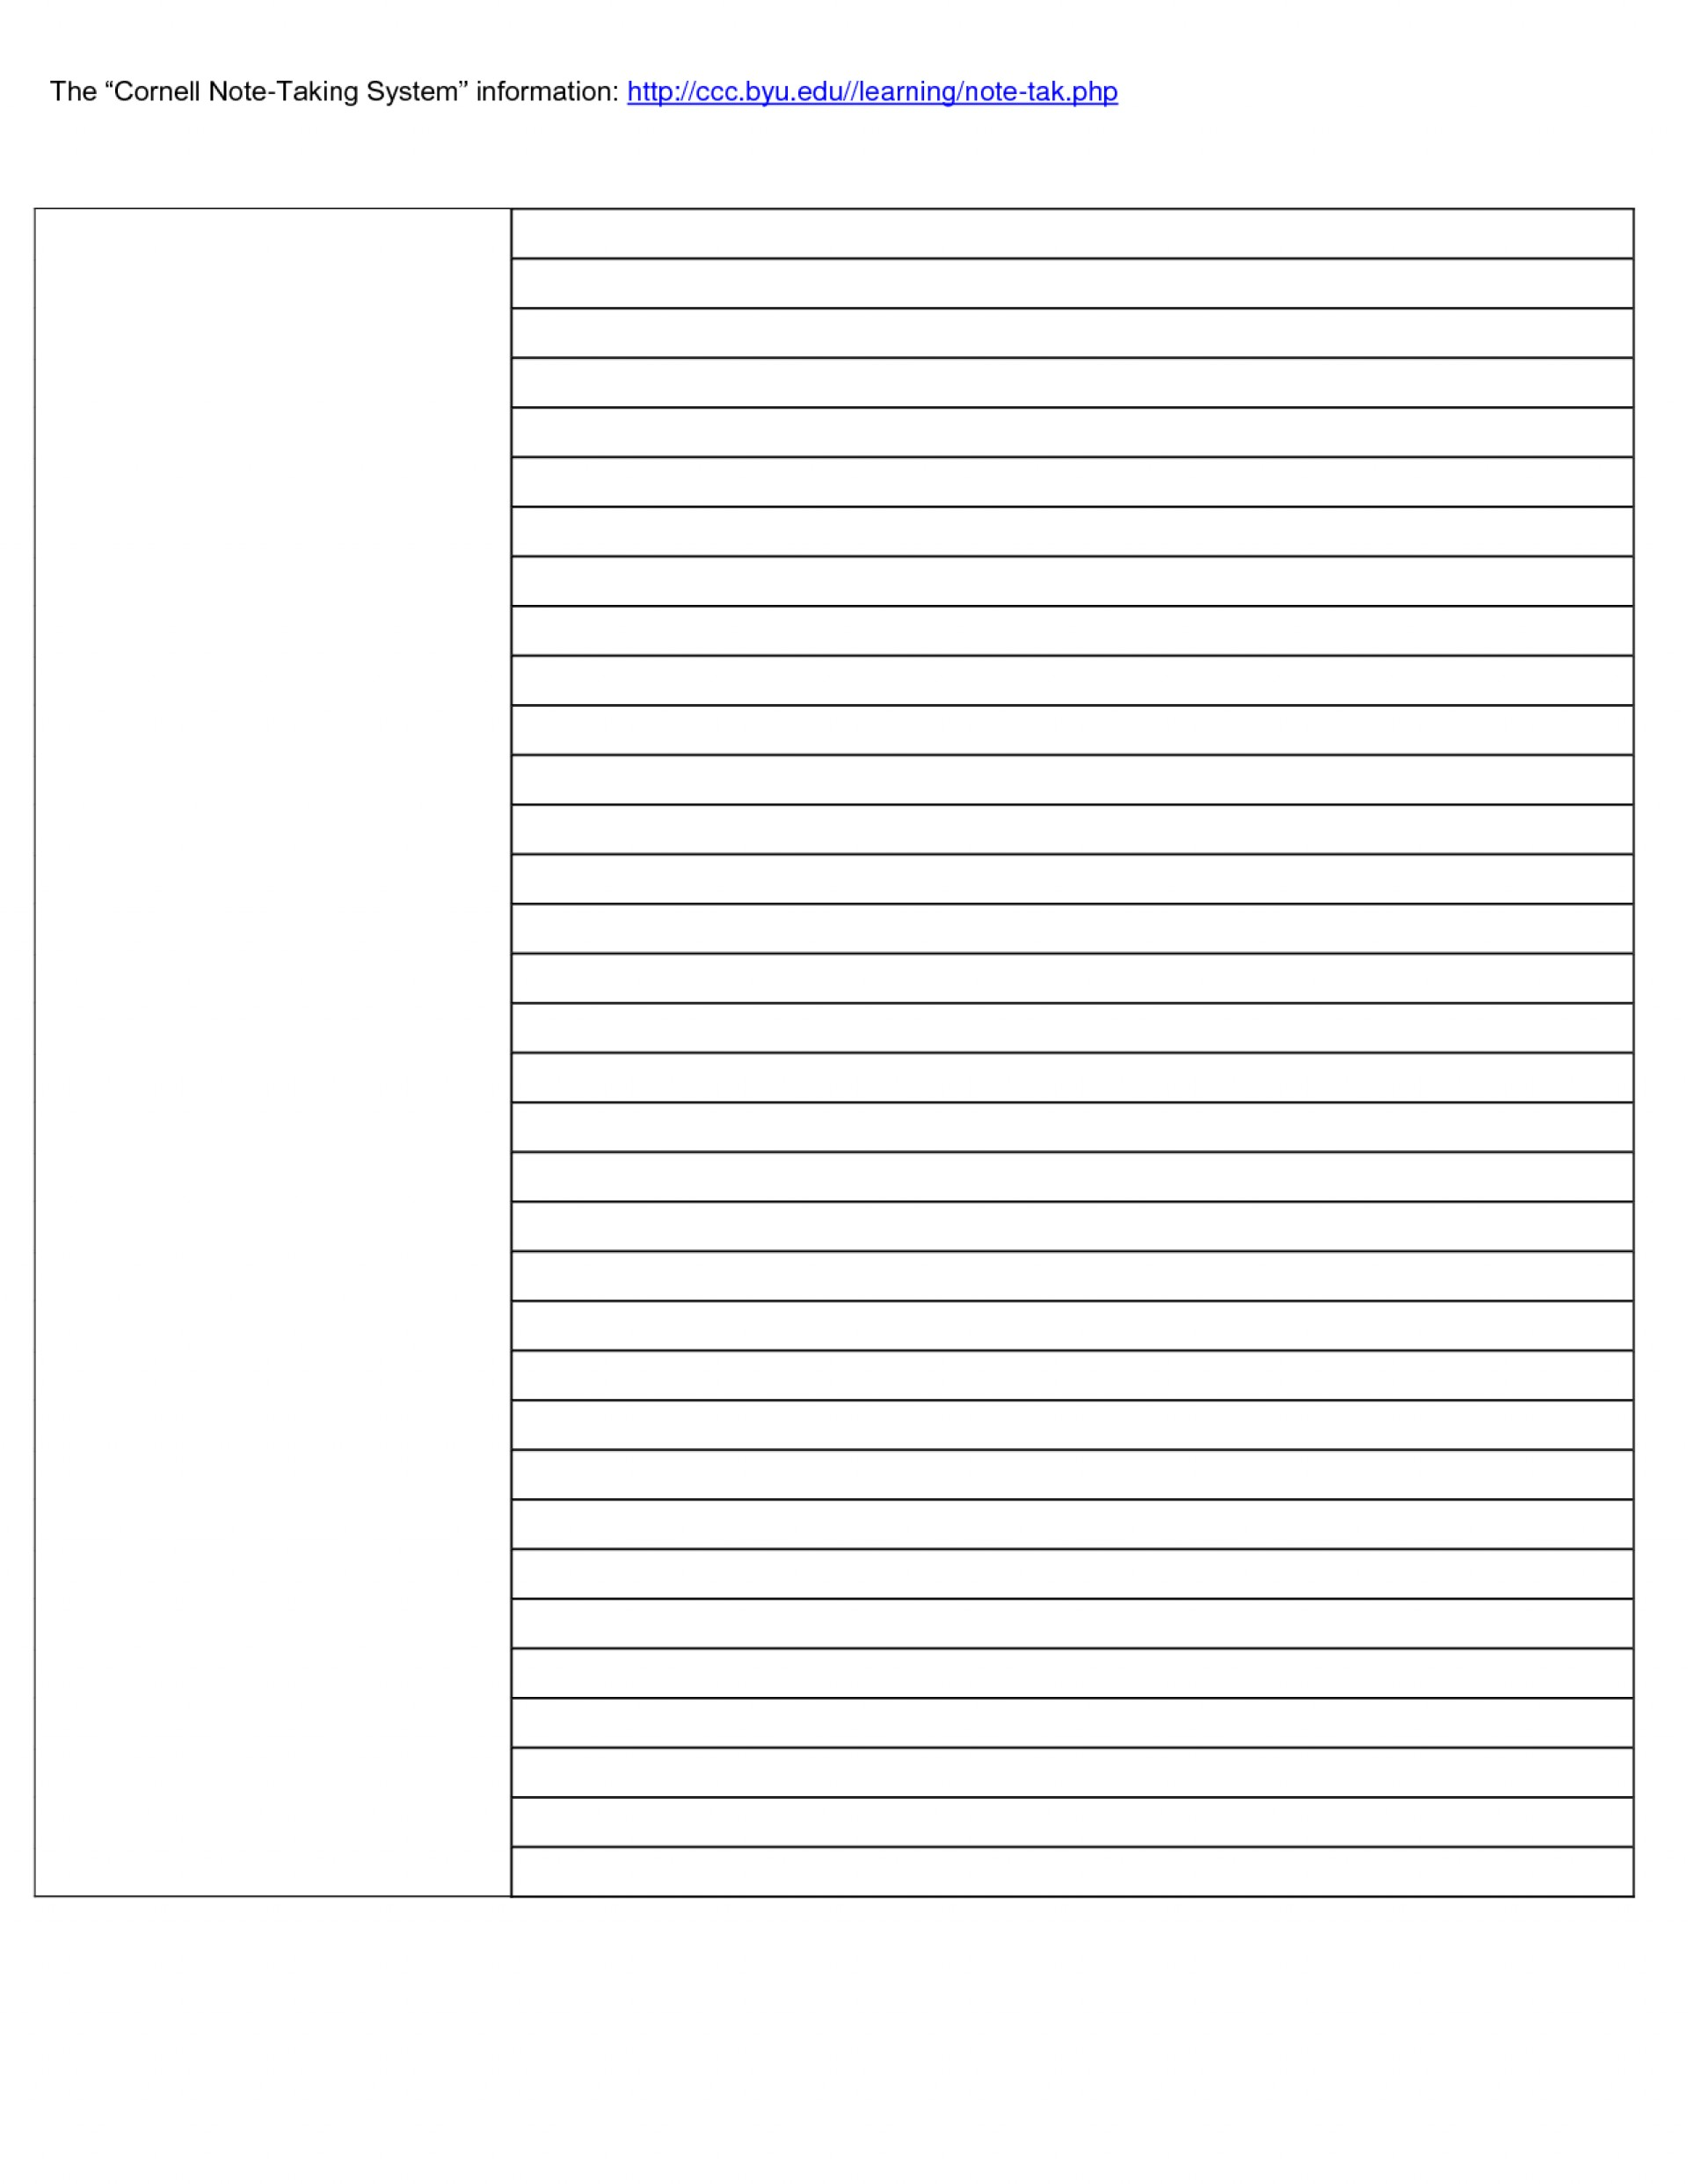 023 Cornell Note Taking Template Word Research Paper